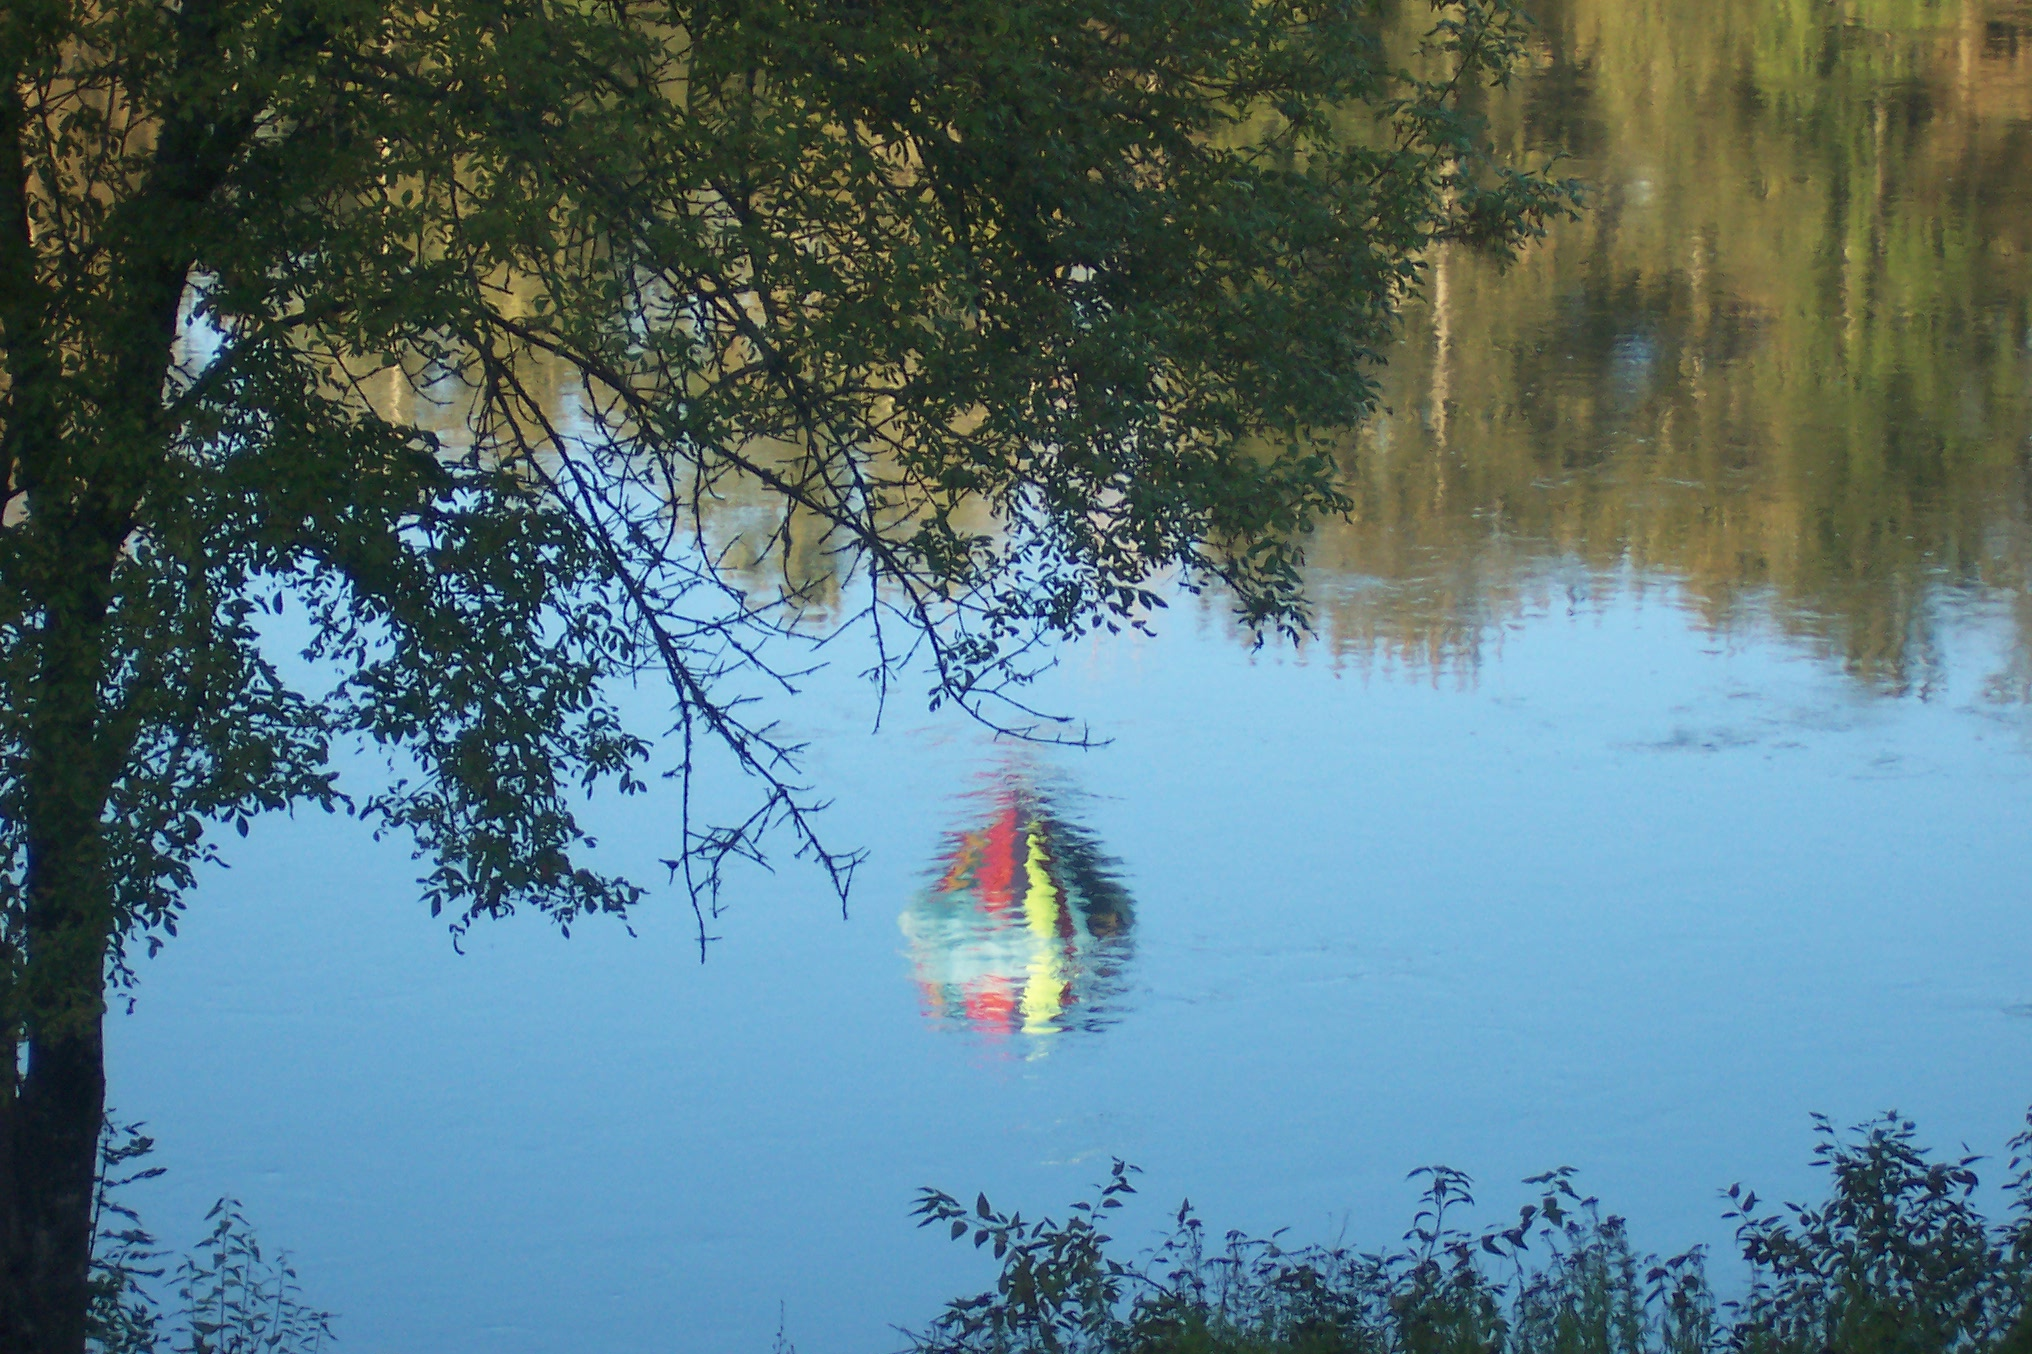 Hot Air Balloon Reflection on the Willamette River